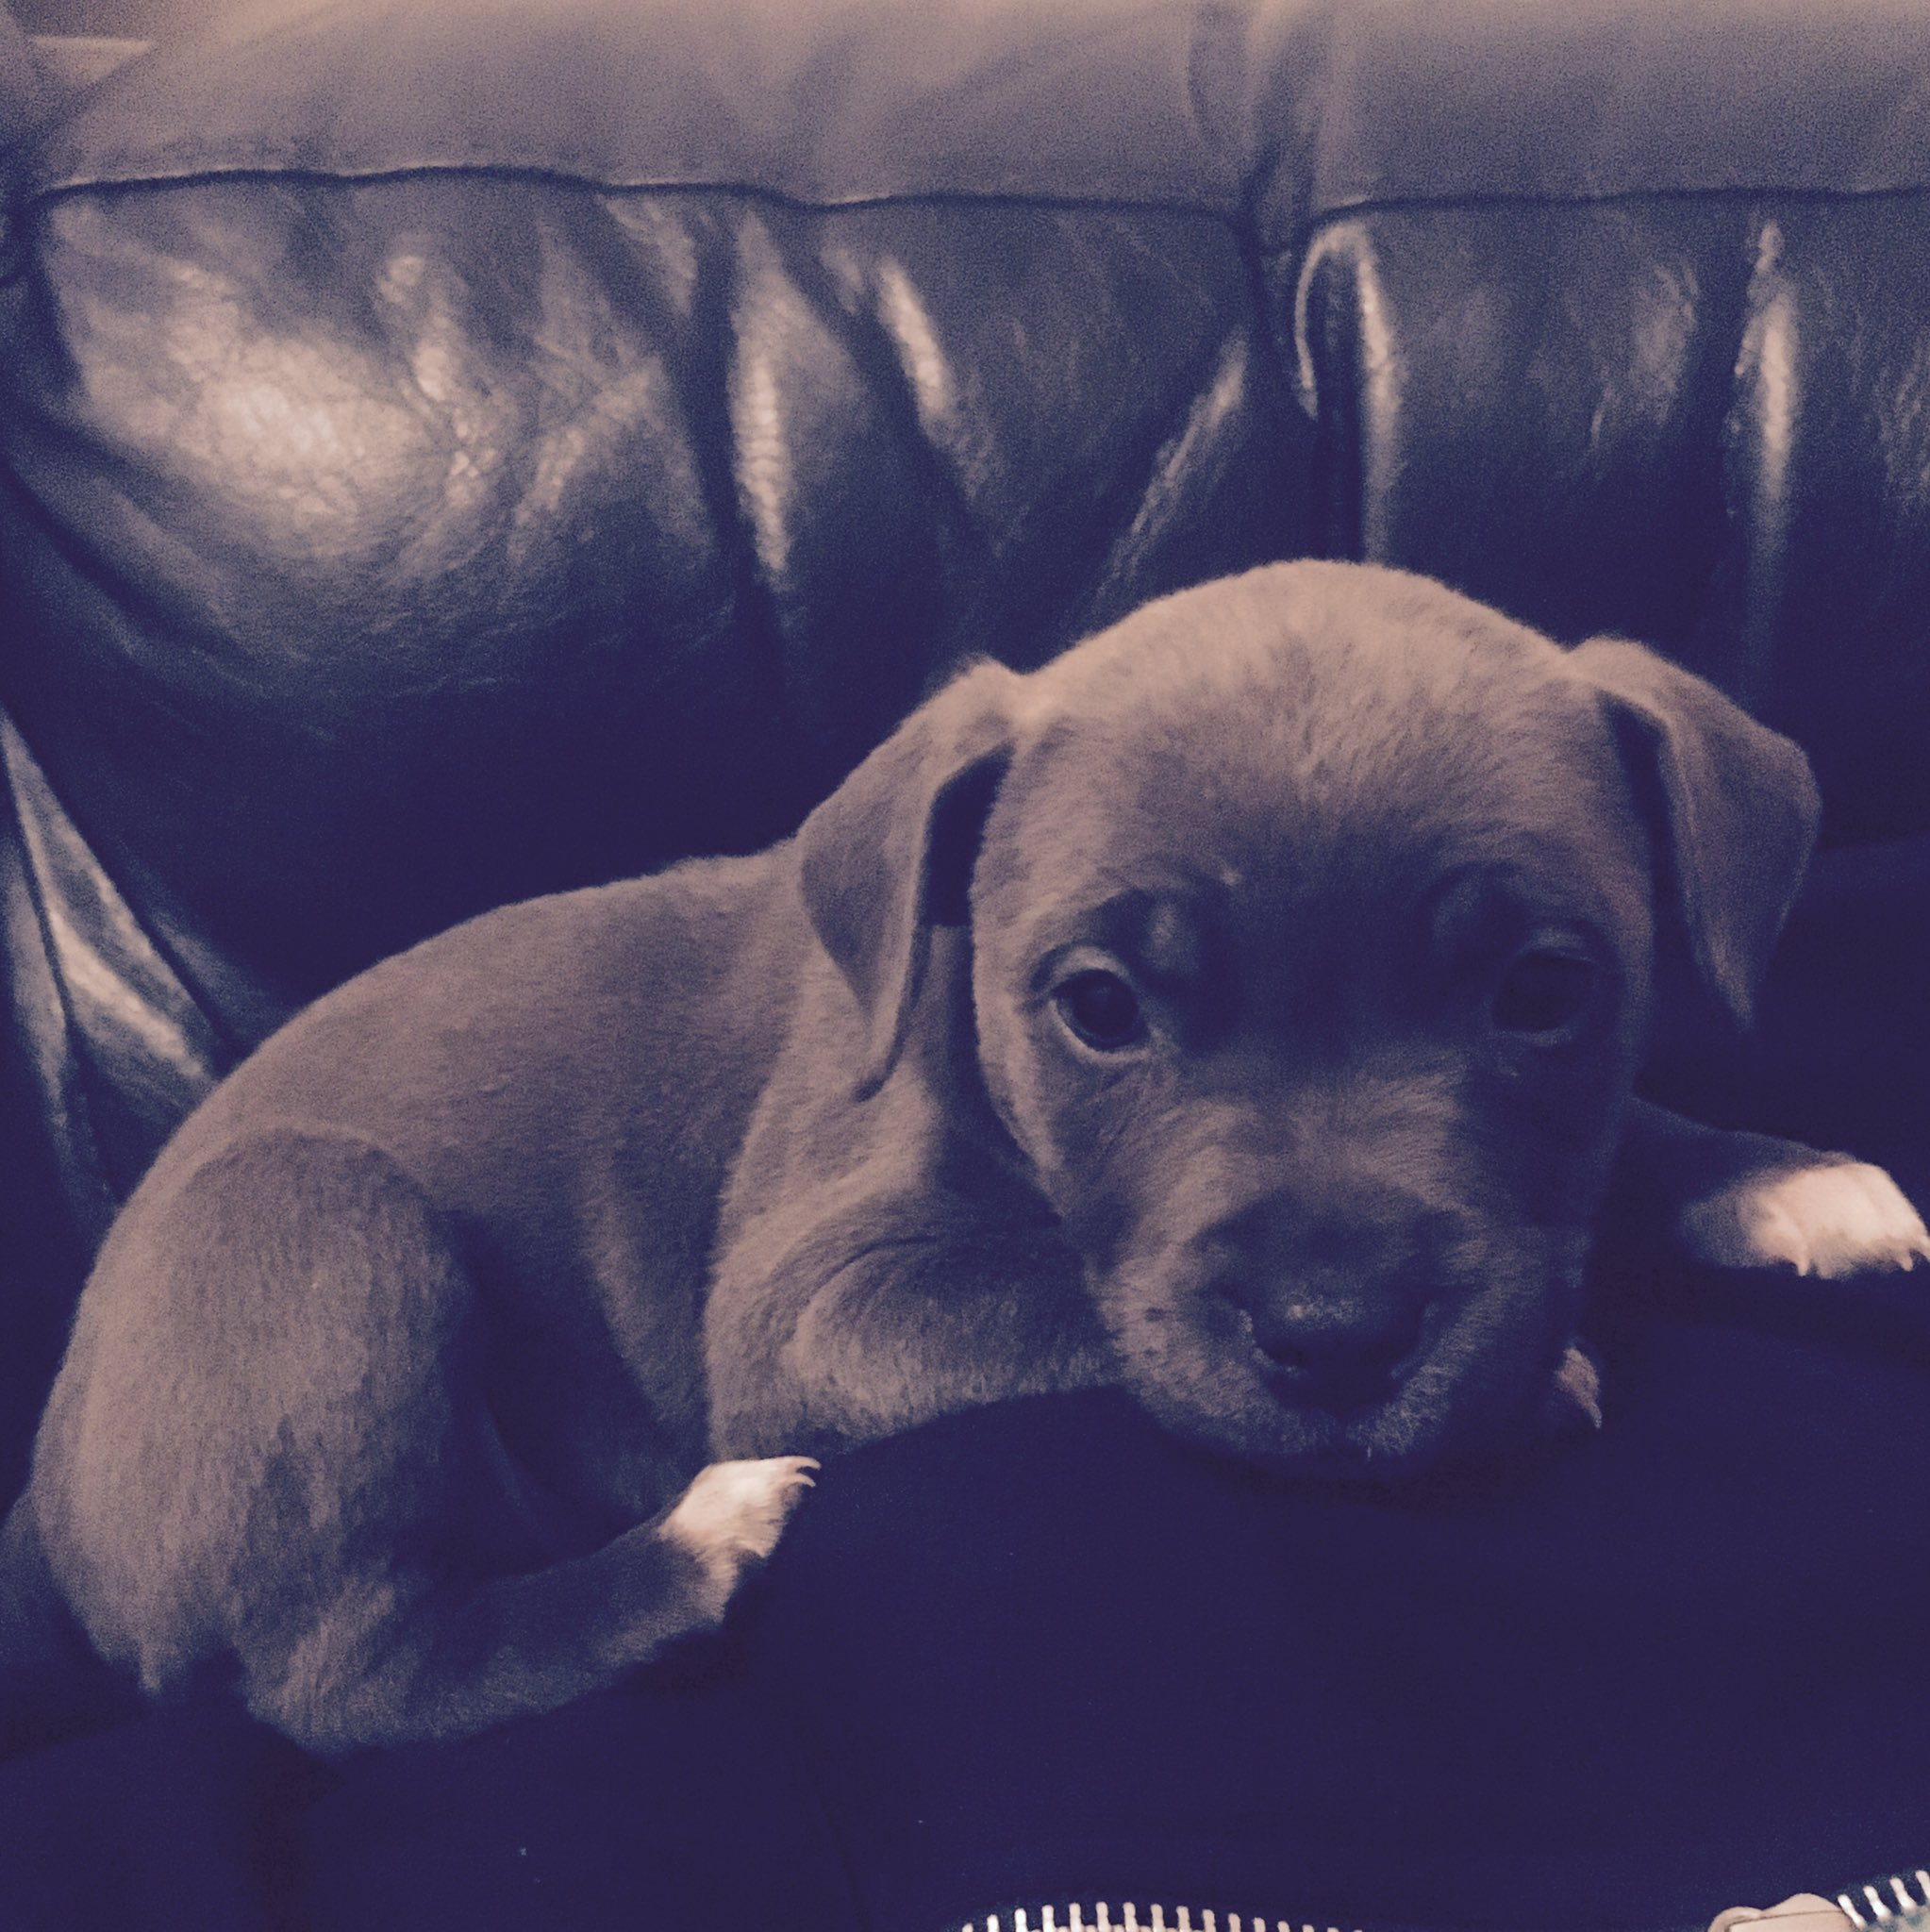 #trendinglive Lottie the Staffordshire Bull Terrior. 9 weeks, full of mischief! Don't be fooled by the cuteness 😂 https://t.co/WLlOsuRxEa